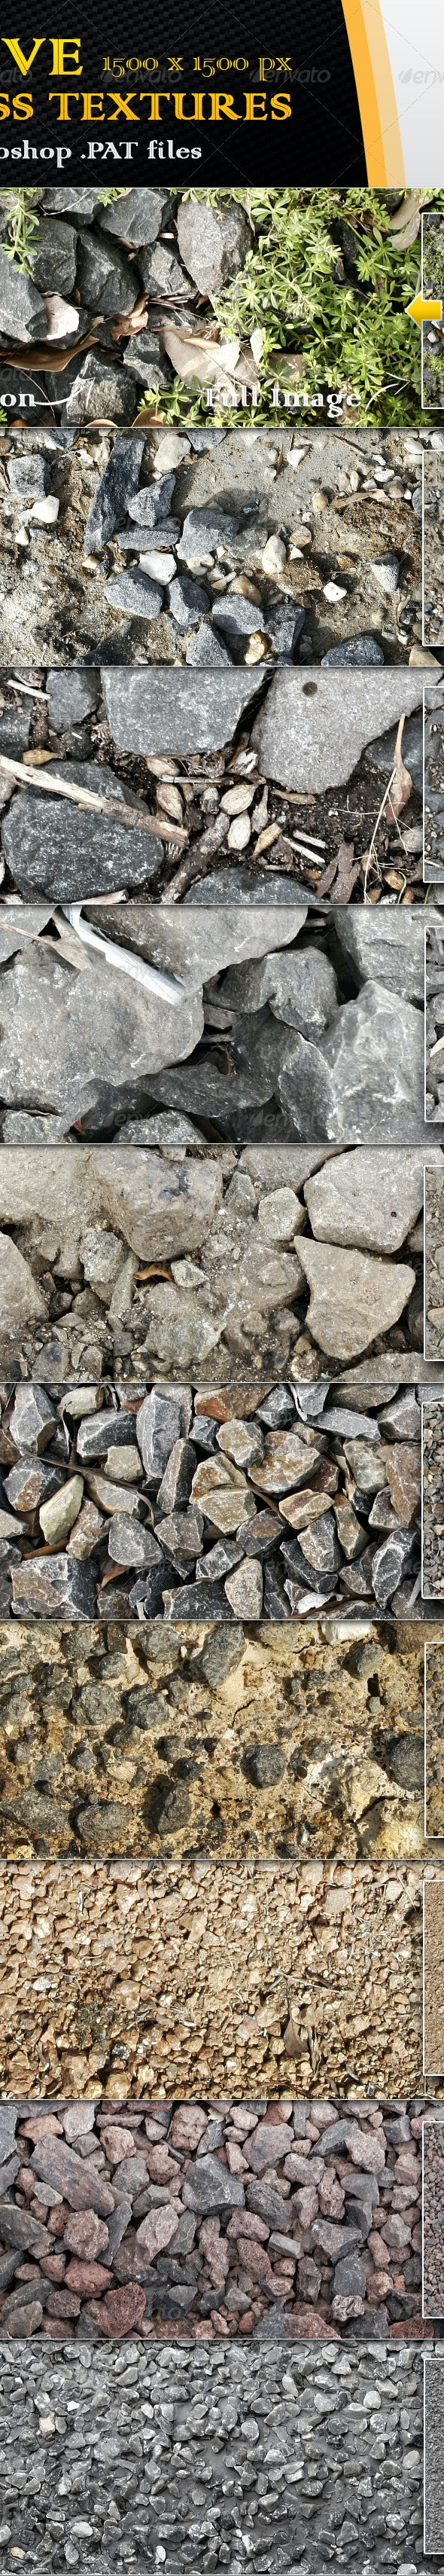 10 Seamless Gravel and Rock Textures - Miscellaneous Textures / Fills / Patterns